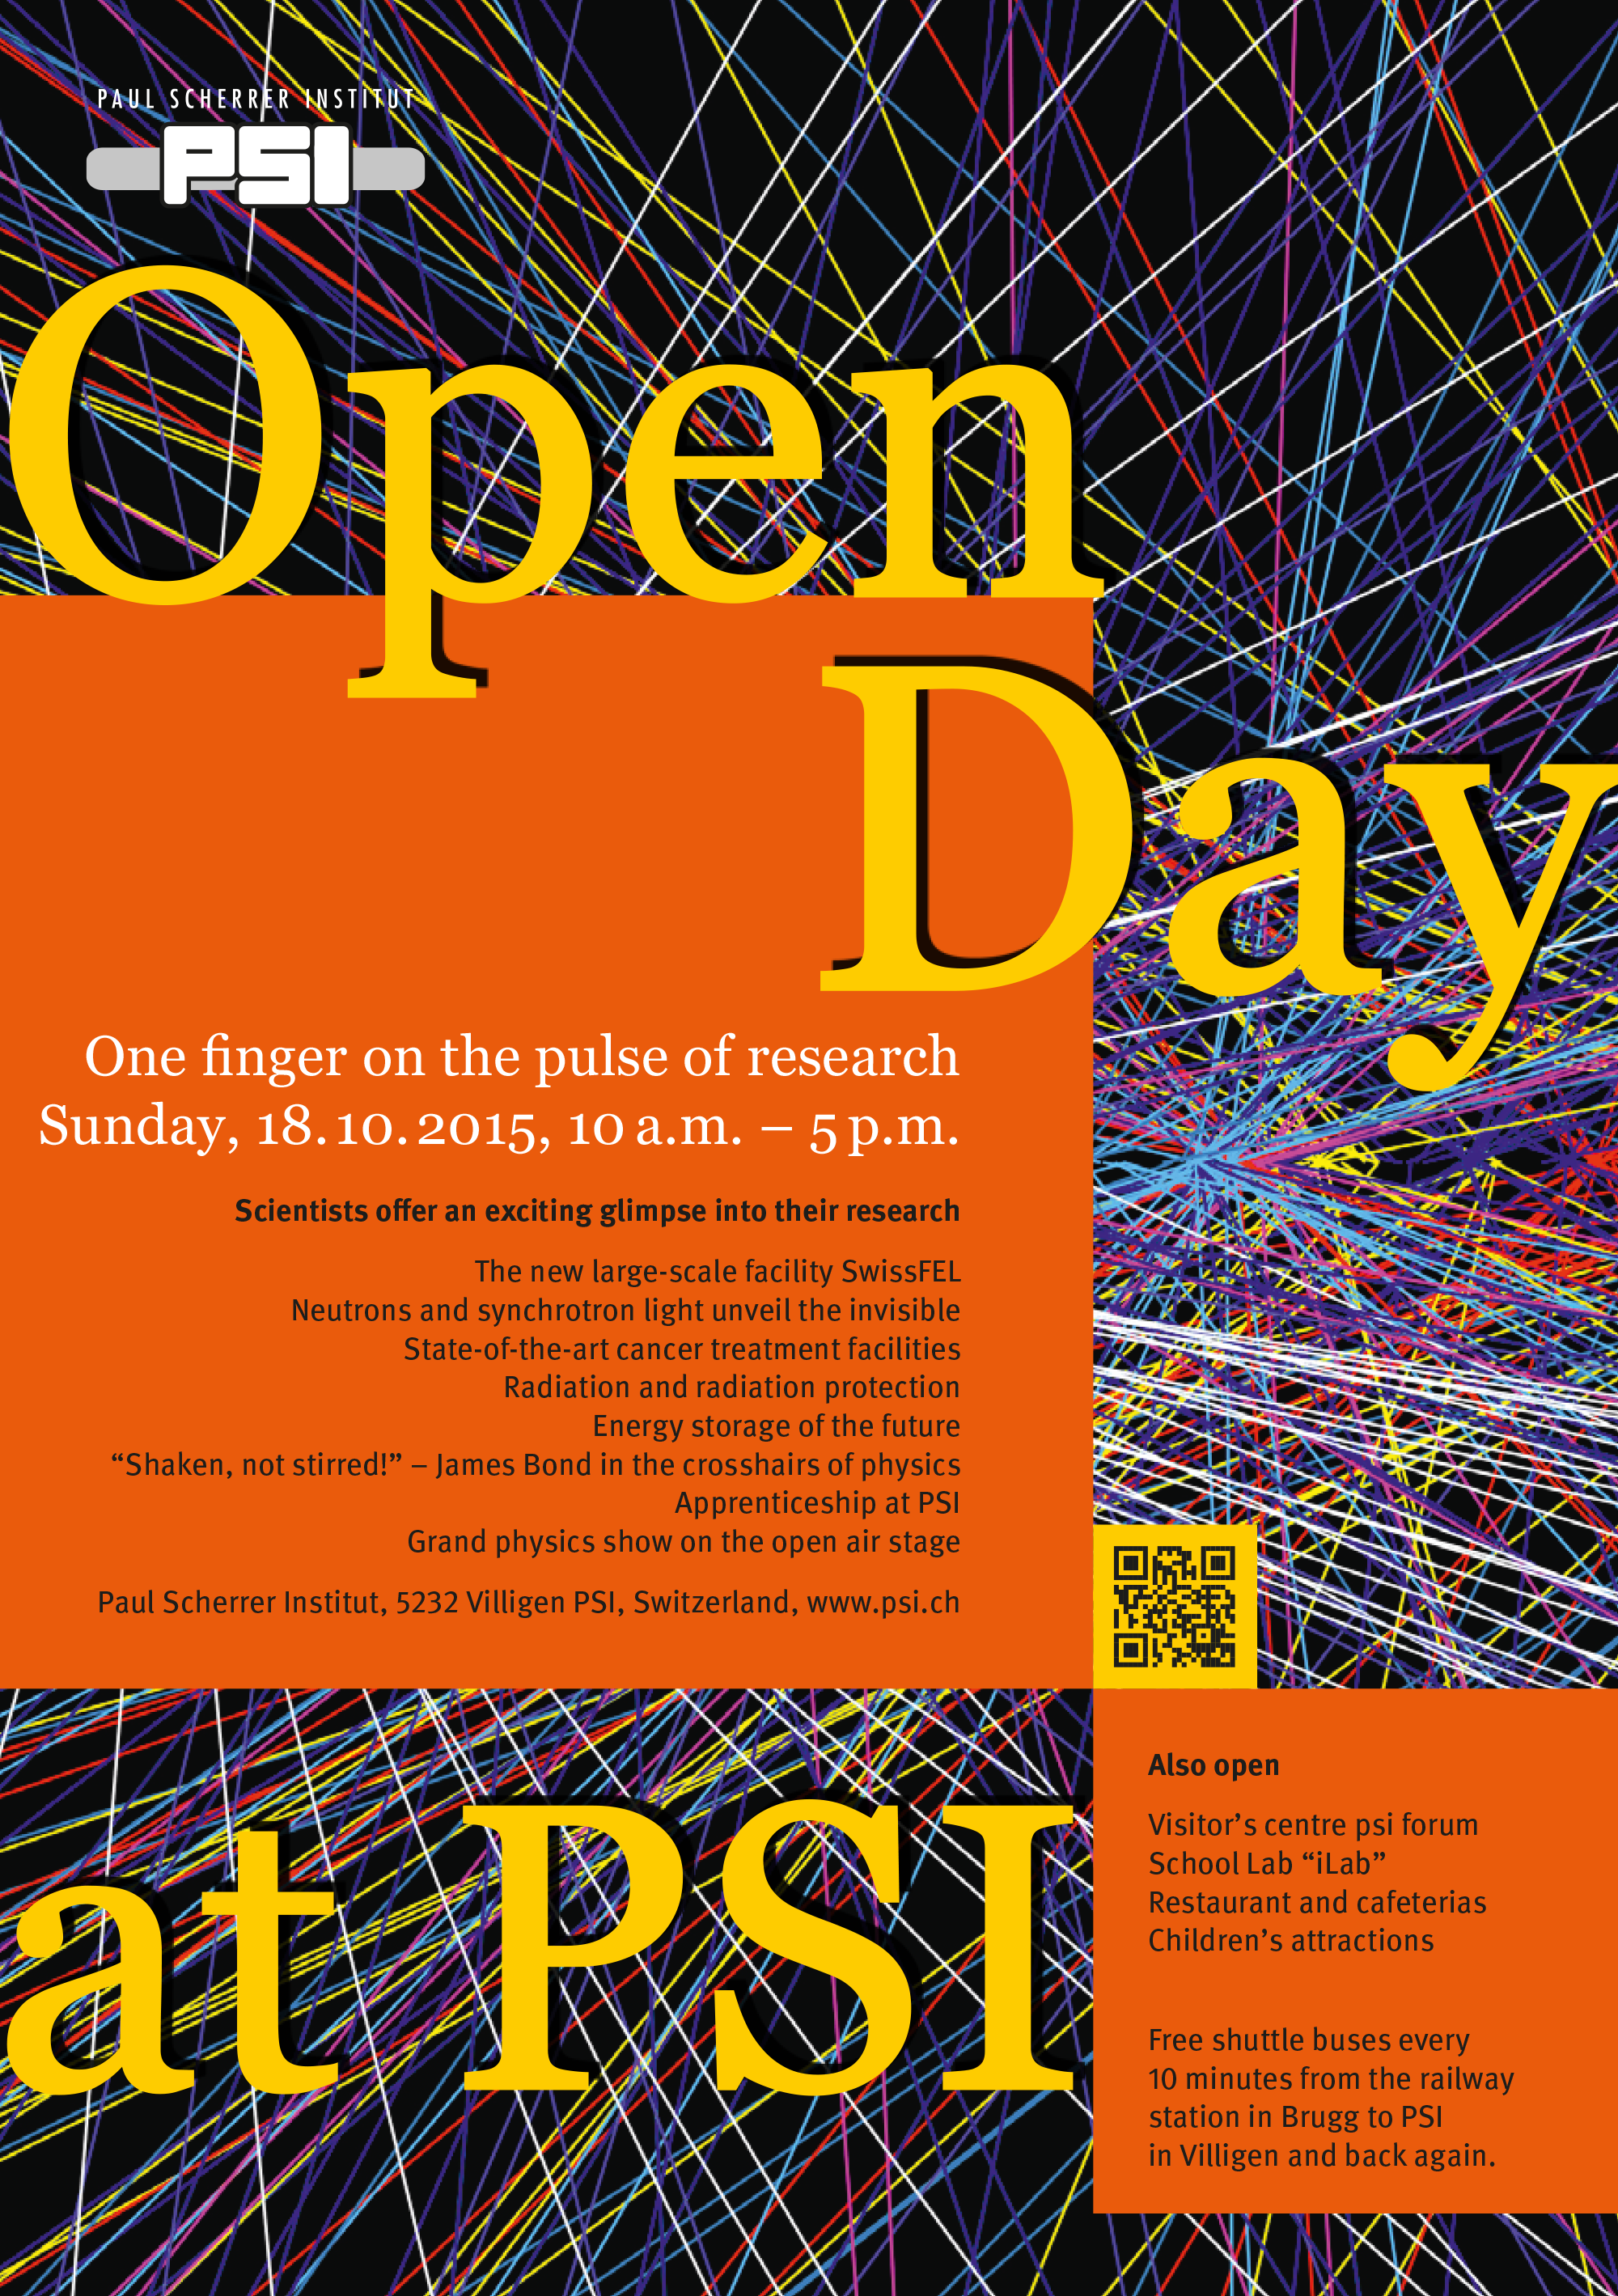 PSI opens its doors to the public on 18 October 2015.